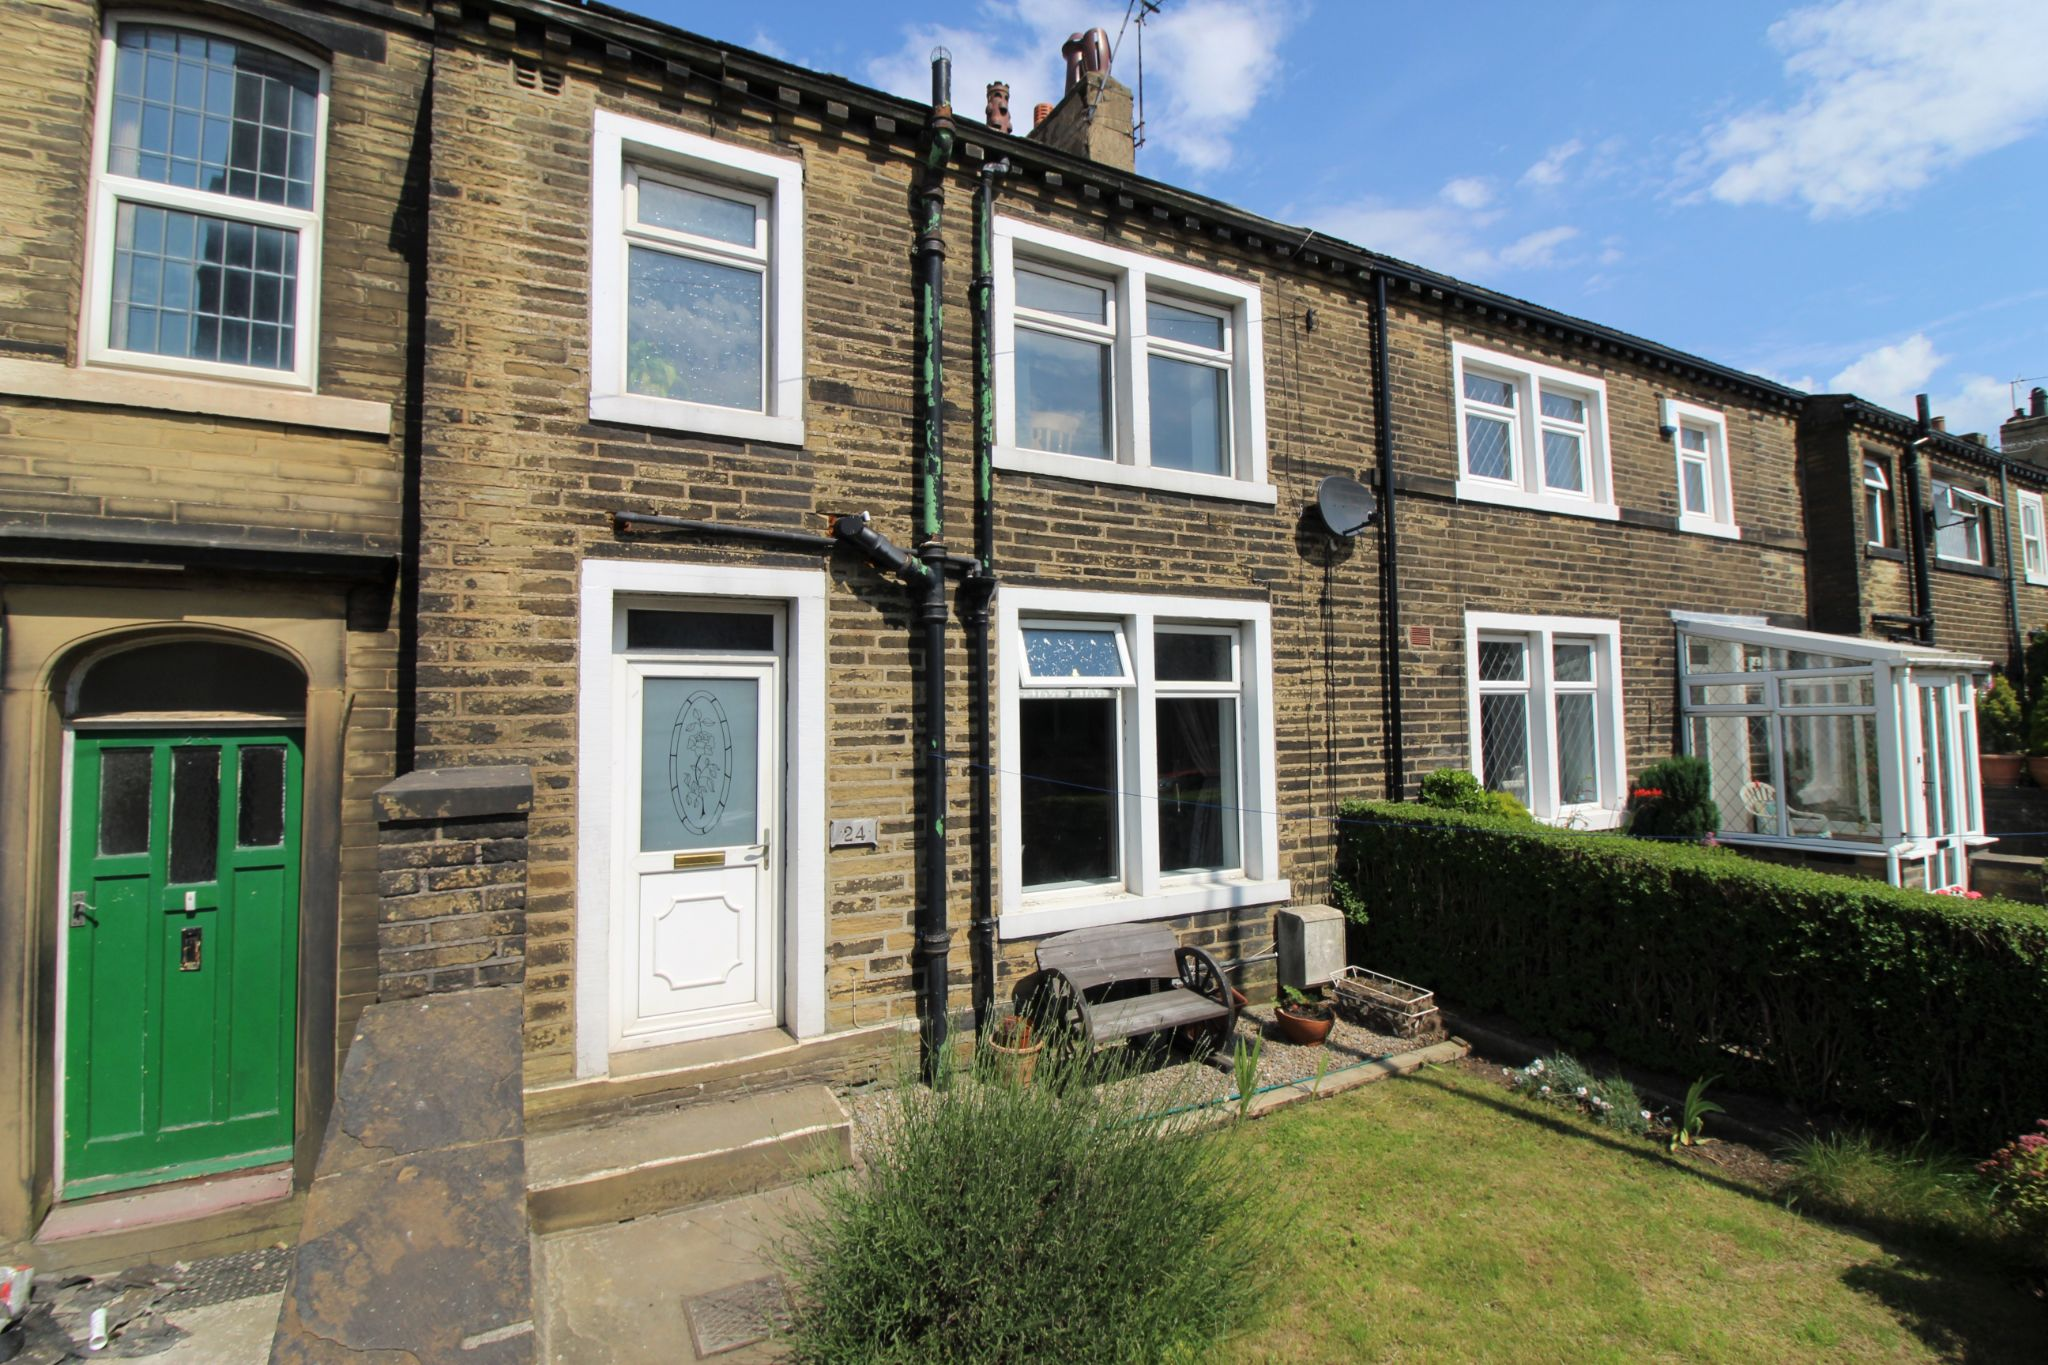 3 bedroom mid terraced house SSTC in Bradford - Front aspect